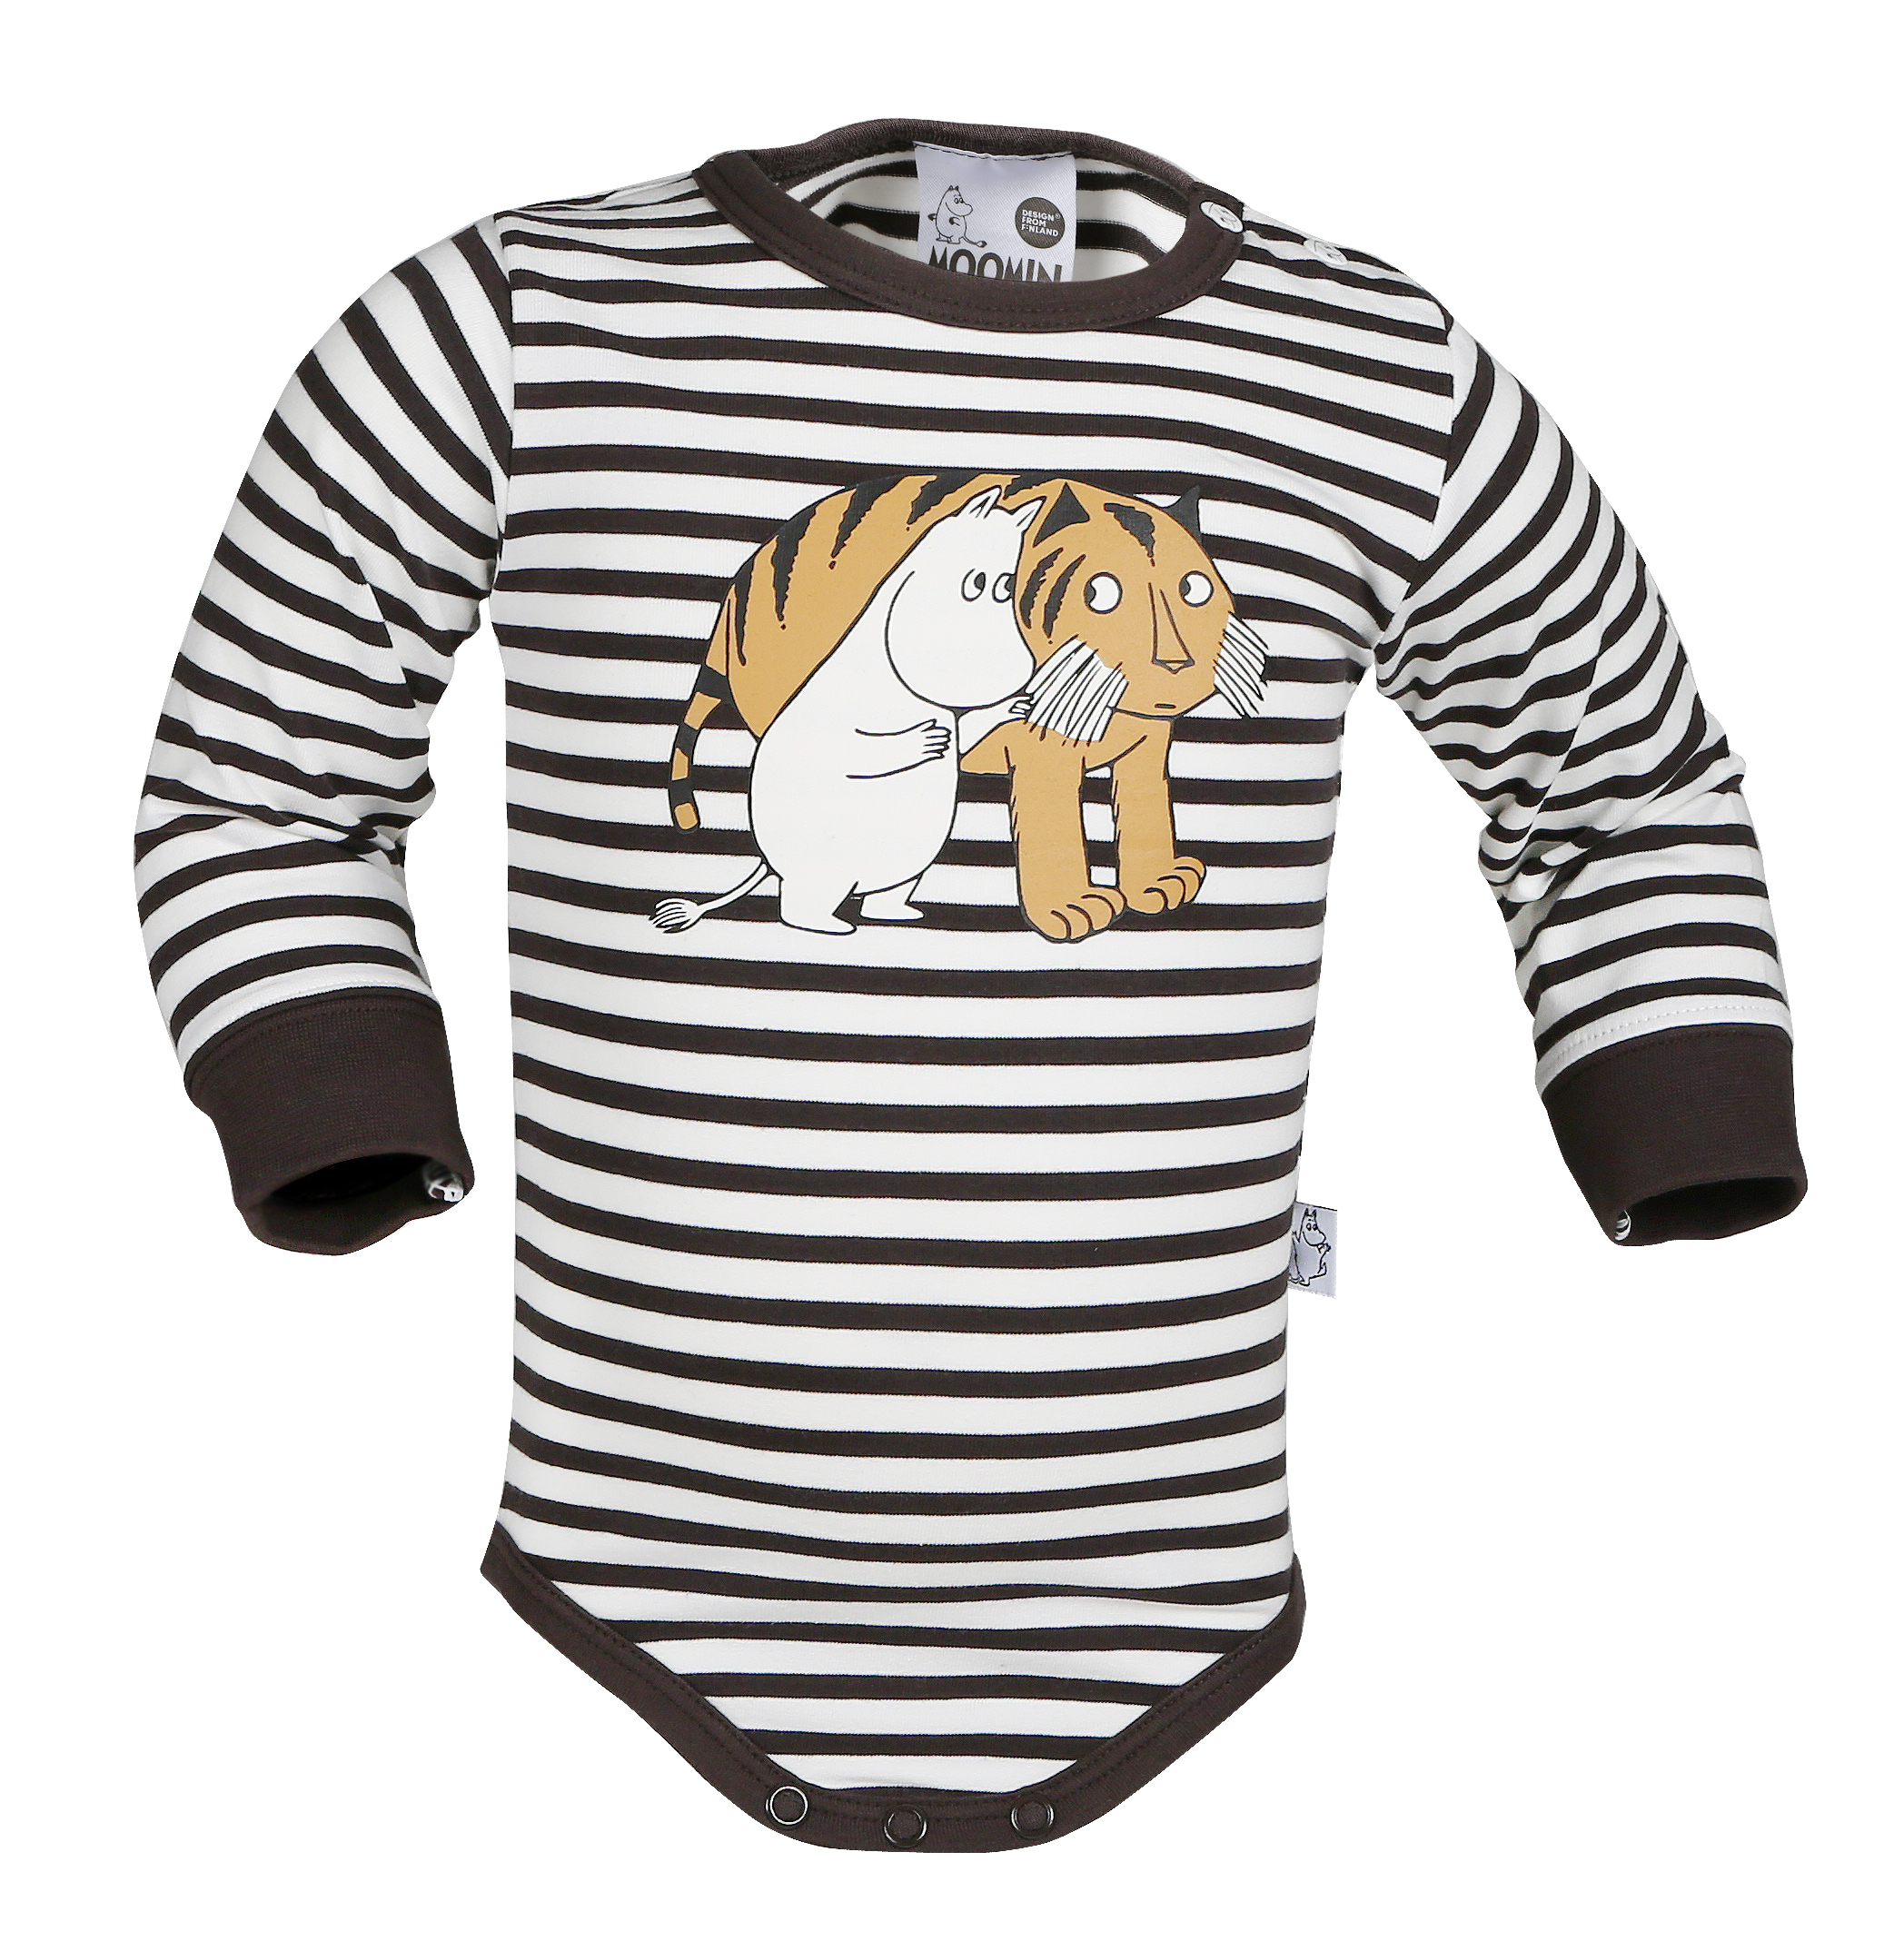 Martinex Moomin and tiger body